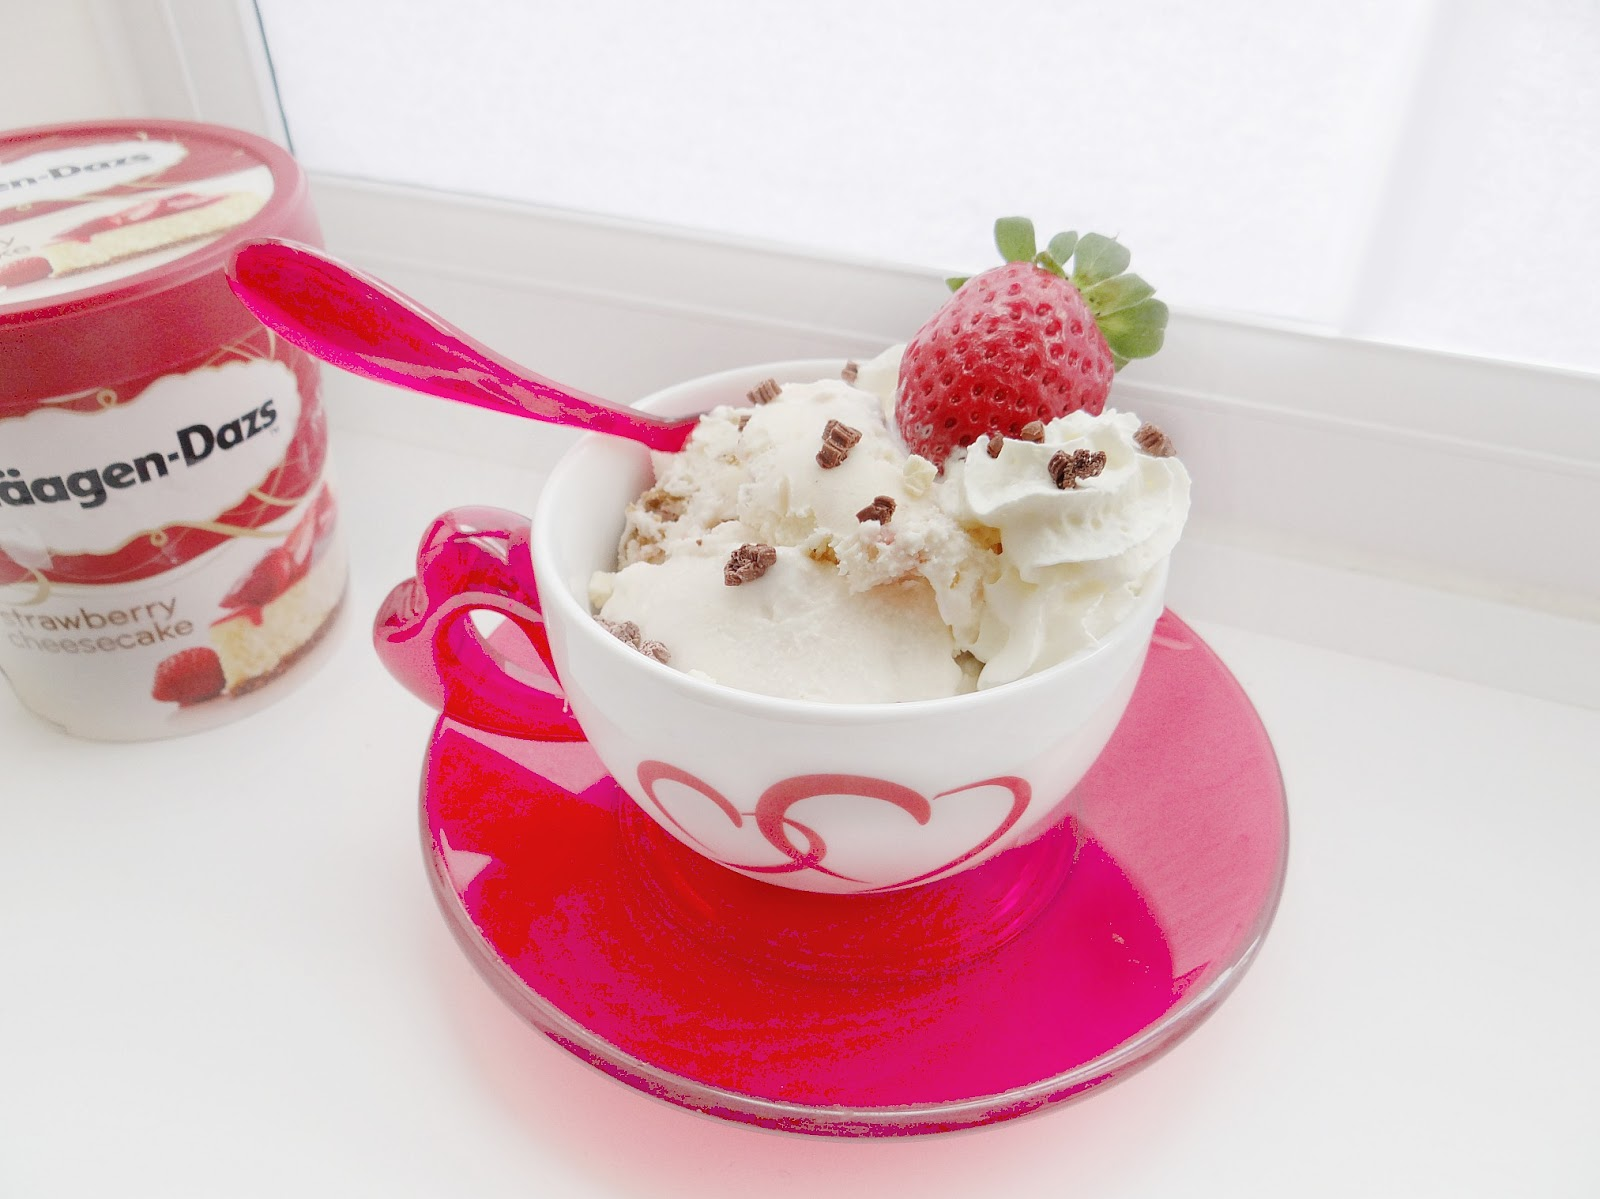 Haagen-Dazs Ice-cream, Strawberry Cheesecake, Valentine's Day